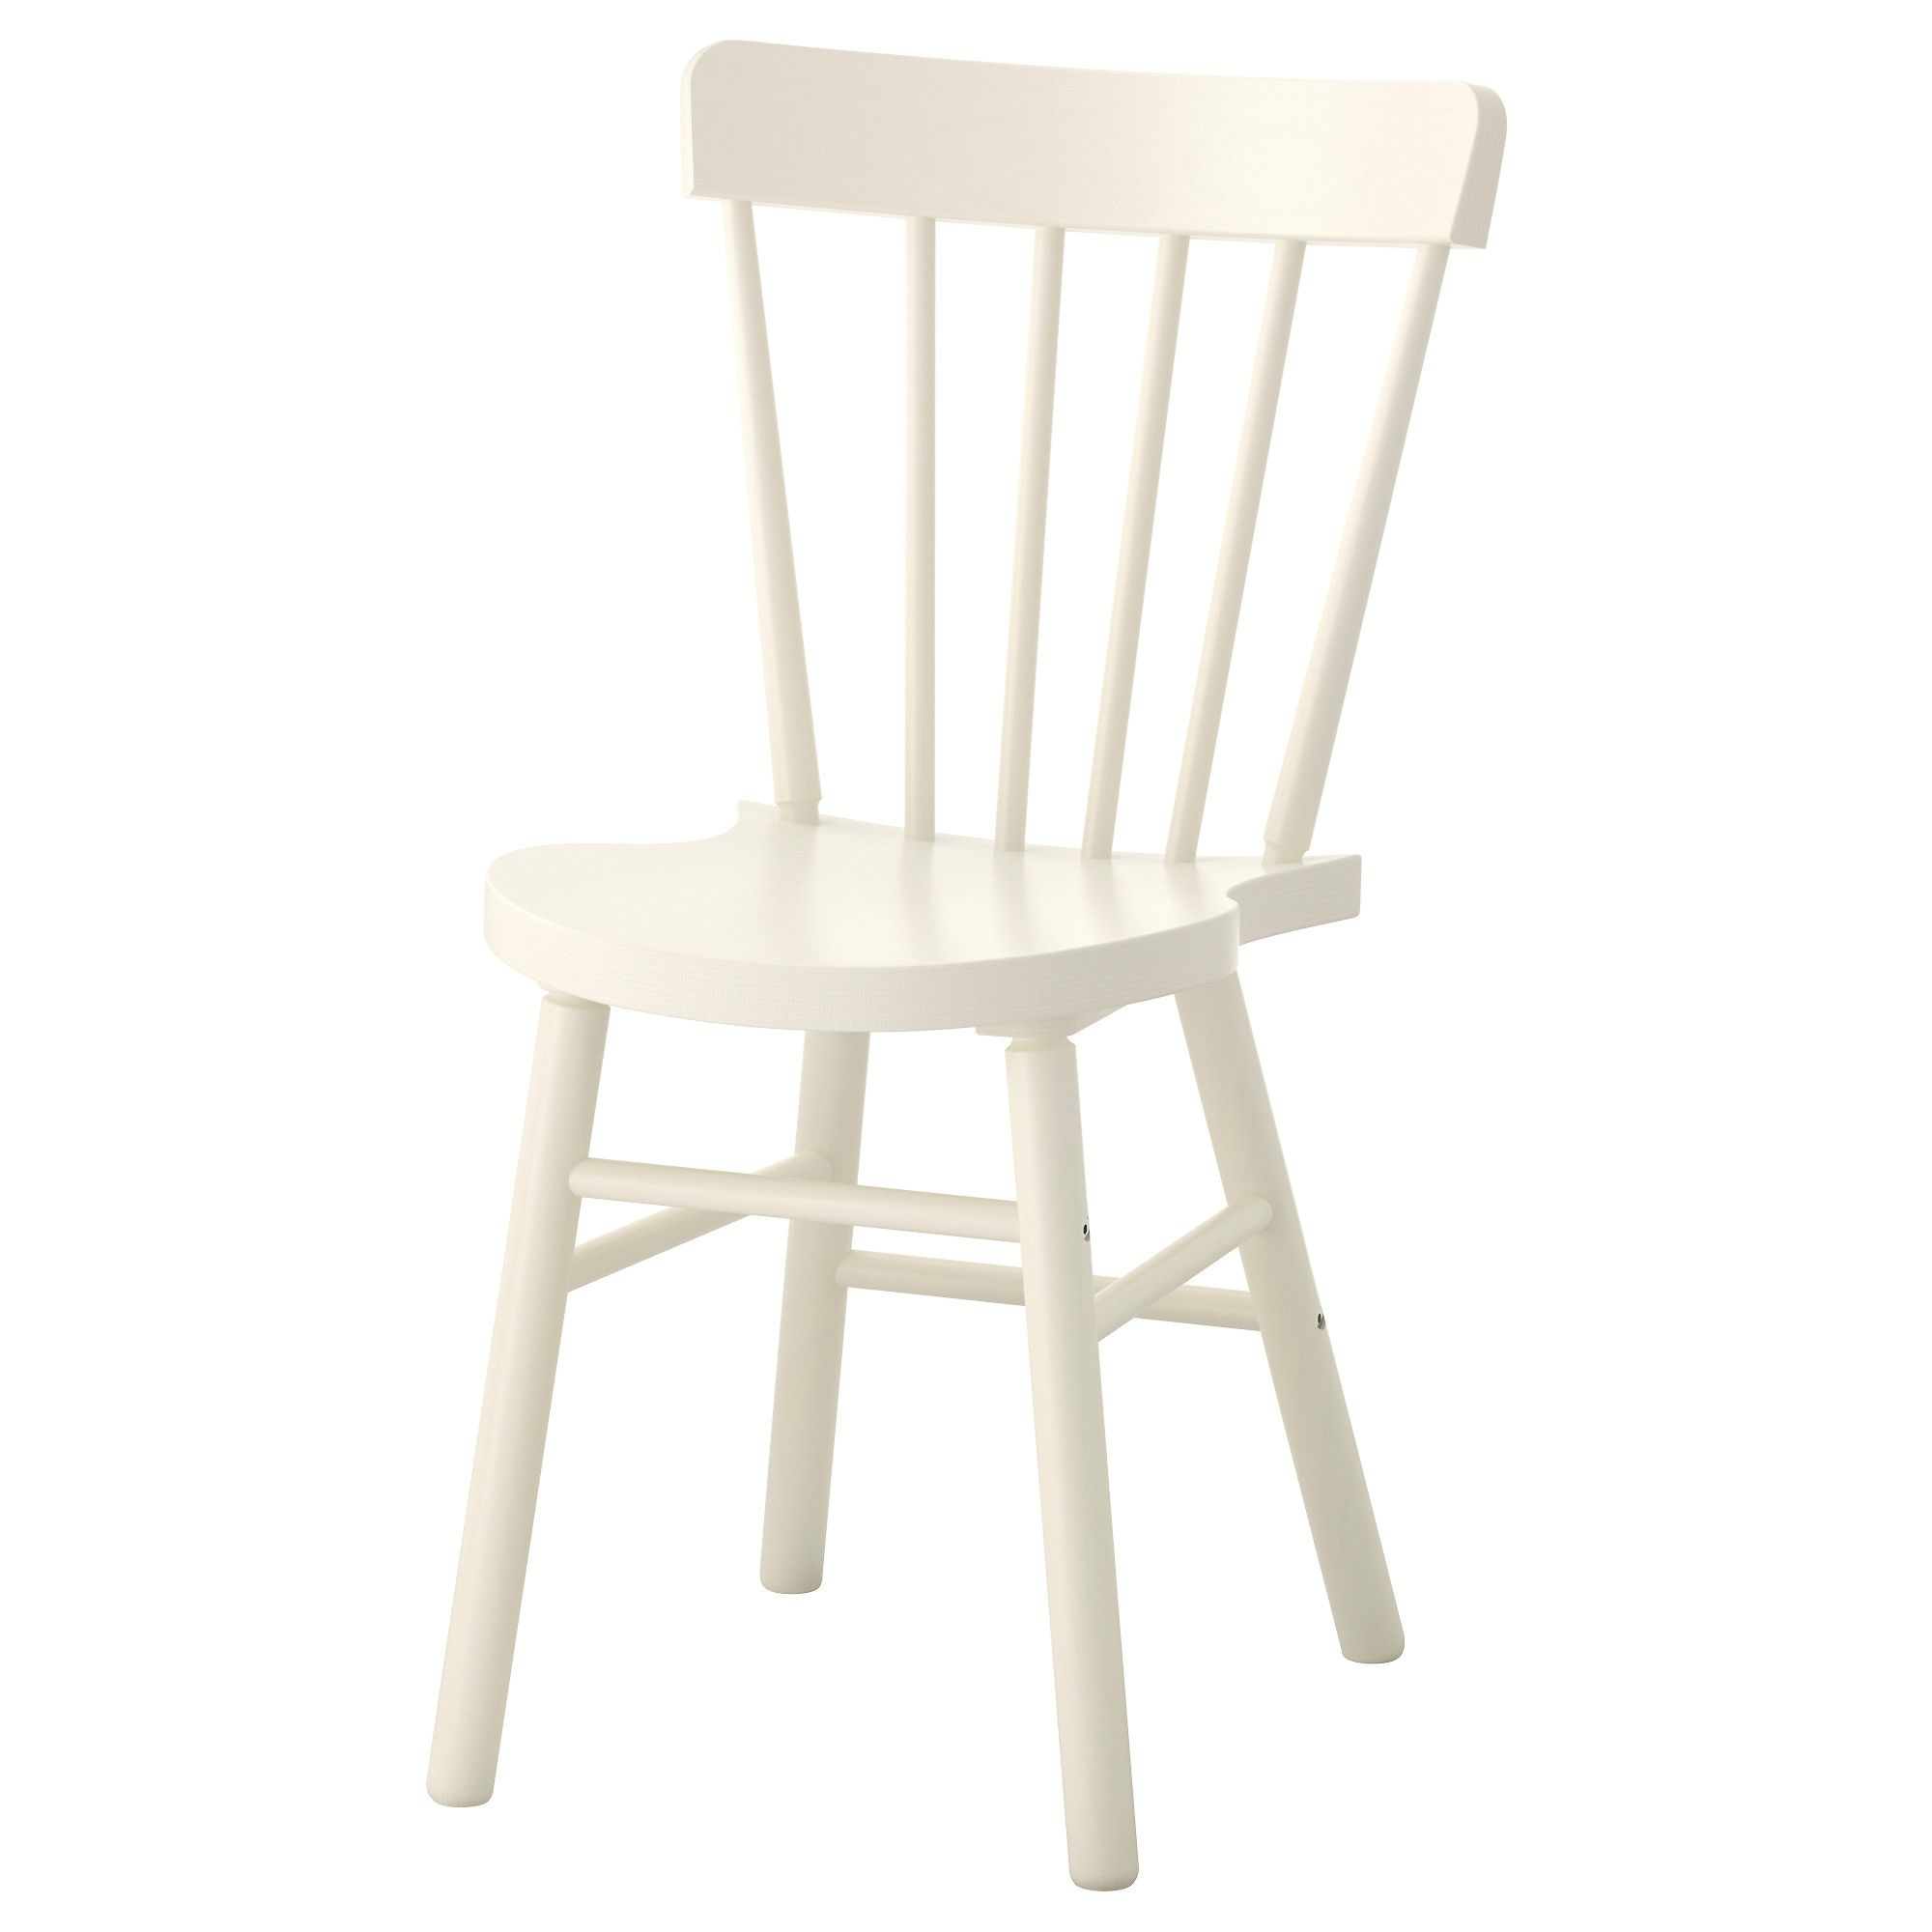 IKEA NORRARYD chair You sit comfortably thanks to the chairu0027s shaped back and seat.  sc 1 st  Pinterest & NORRARYD Chair White | Pinterest